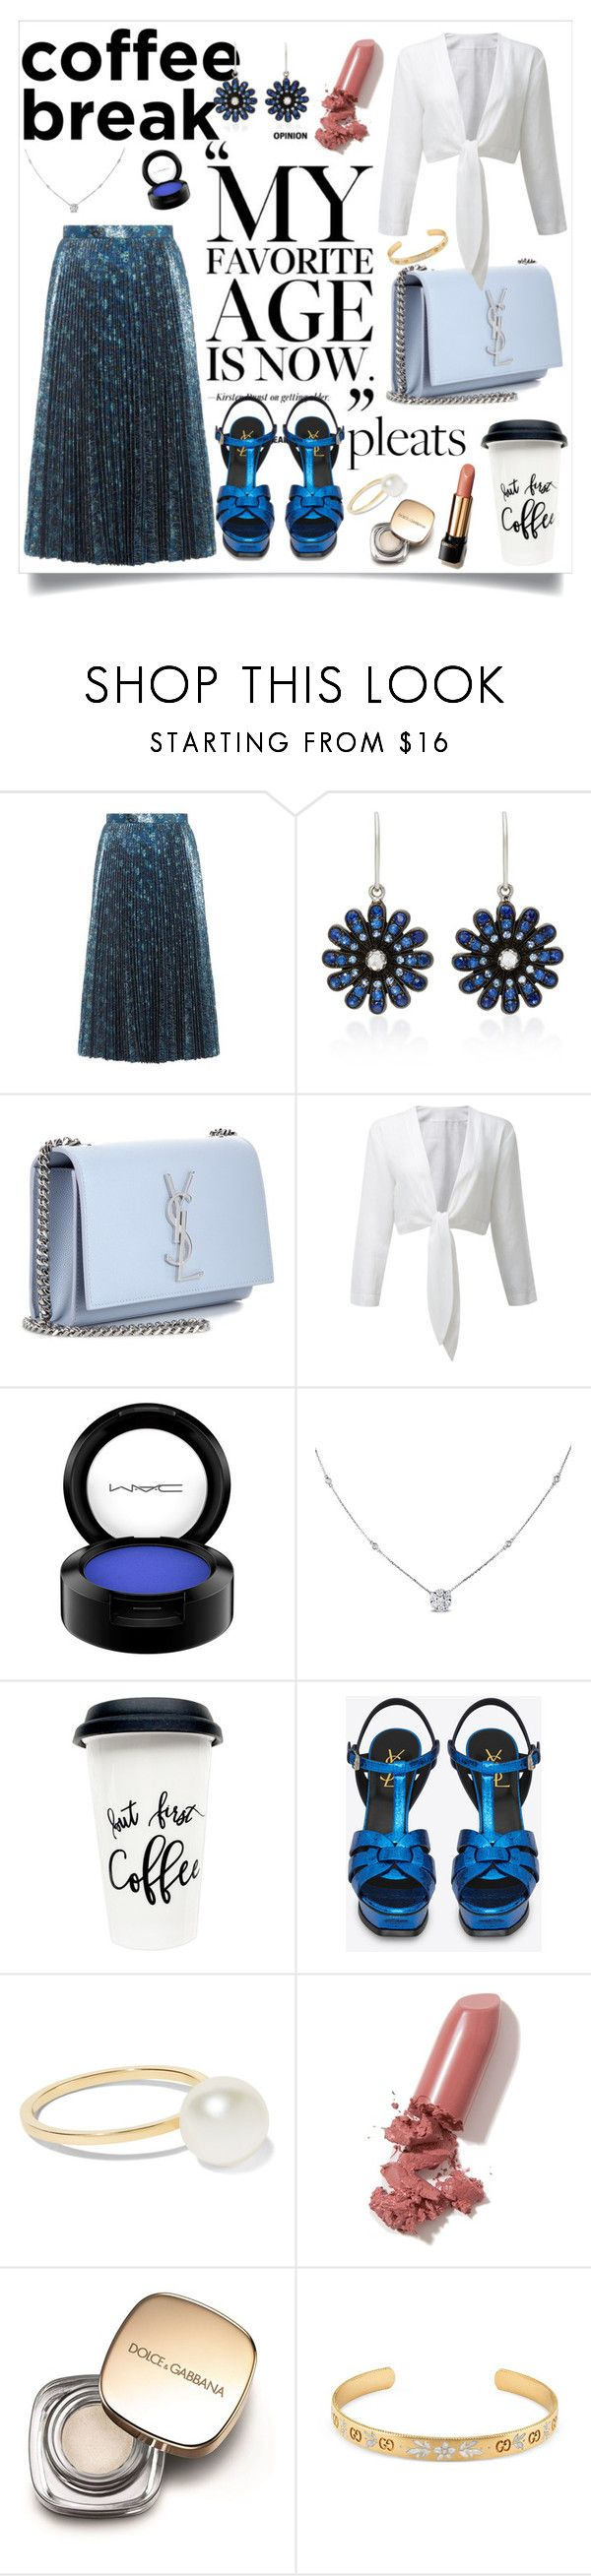 """""""Coffee break and Pleats!"""" by sarah-alam ❤ liked on Polyvore featuring Prada, Nam Cho, Yves Saint Laurent, MAC Cosmetics, Ice, Sophie Bille Brahe, LAQA & Co., Lancôme, Dolce&Gabbana and Gucci"""